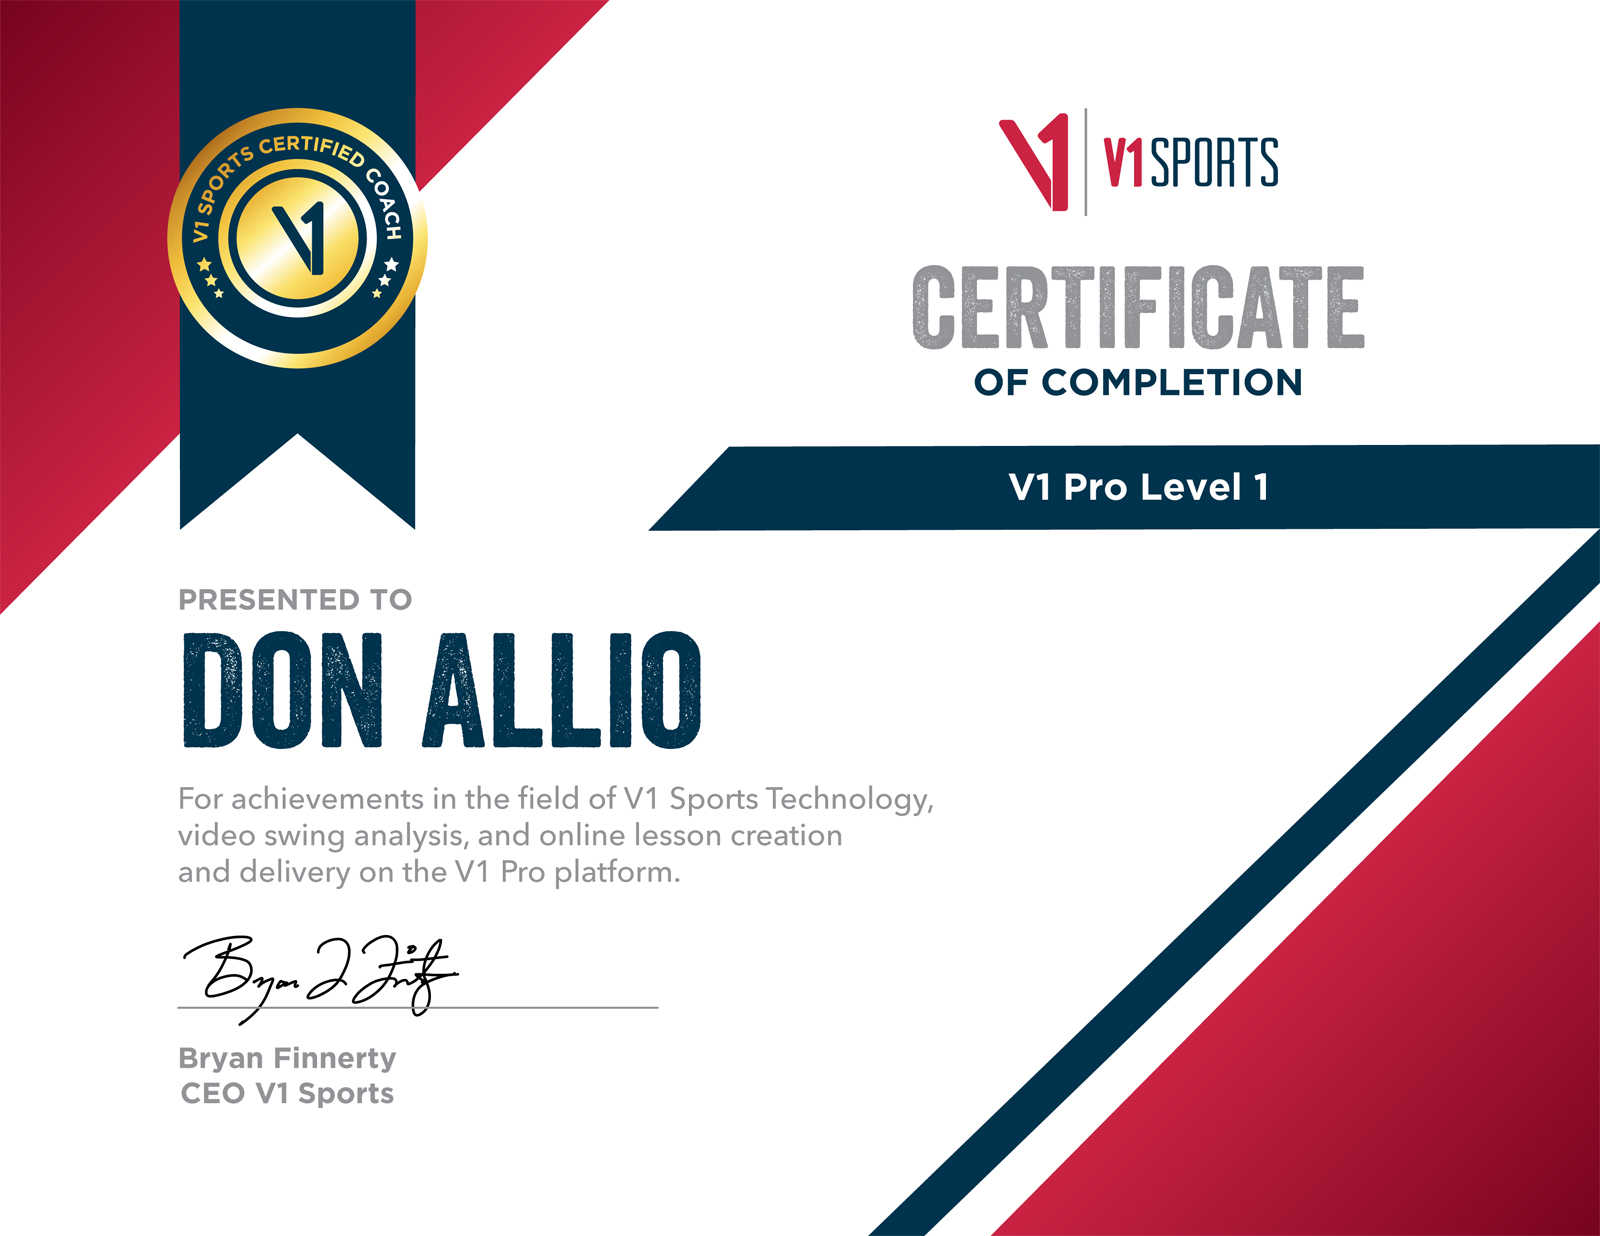 V1-Pro-Level-1-Certification-Don-Allio